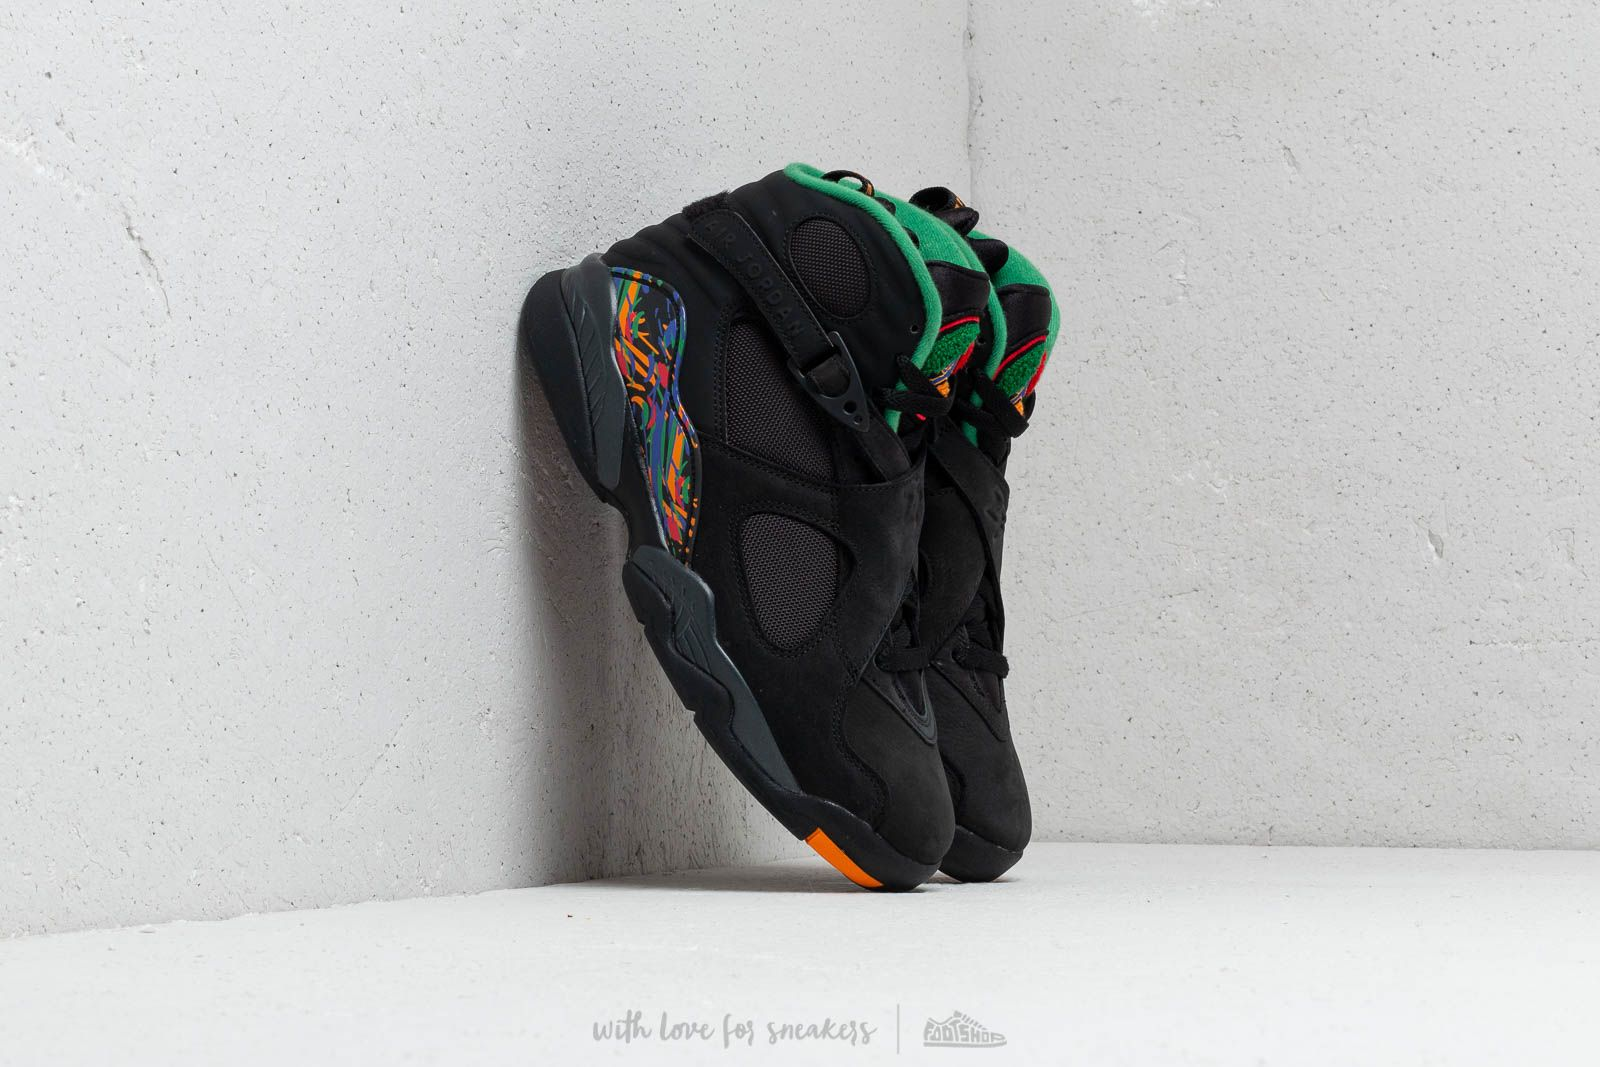 597ccfd50b3 Air Jordan 8 Retro Tinker Air Raid Black/ Light Concord/ Aloe Verde ...